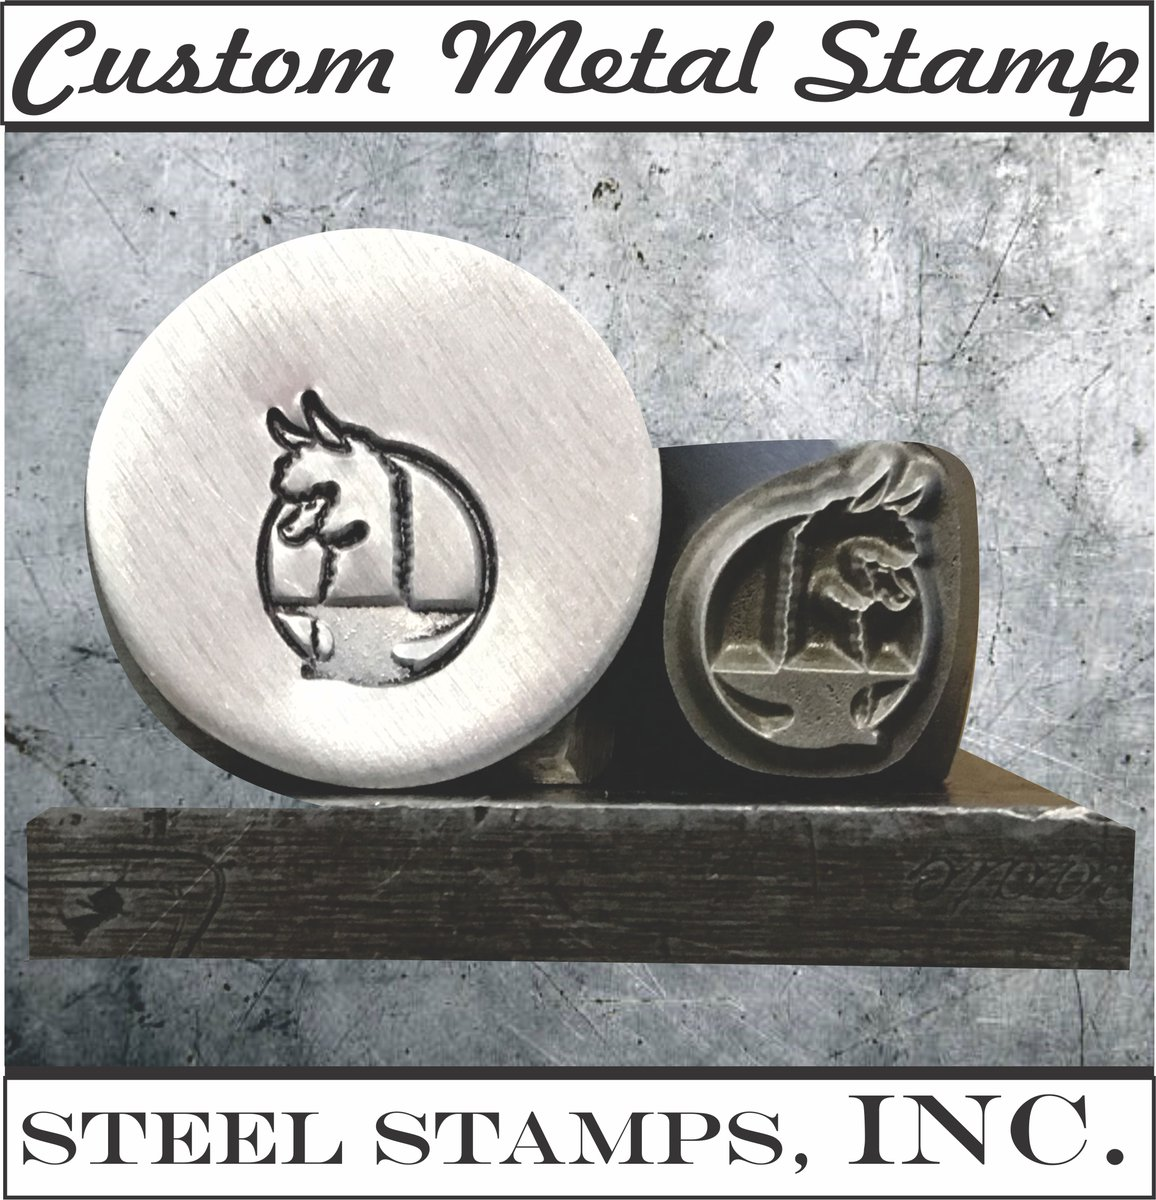 Steel Stamps, Inc  on Twitter: